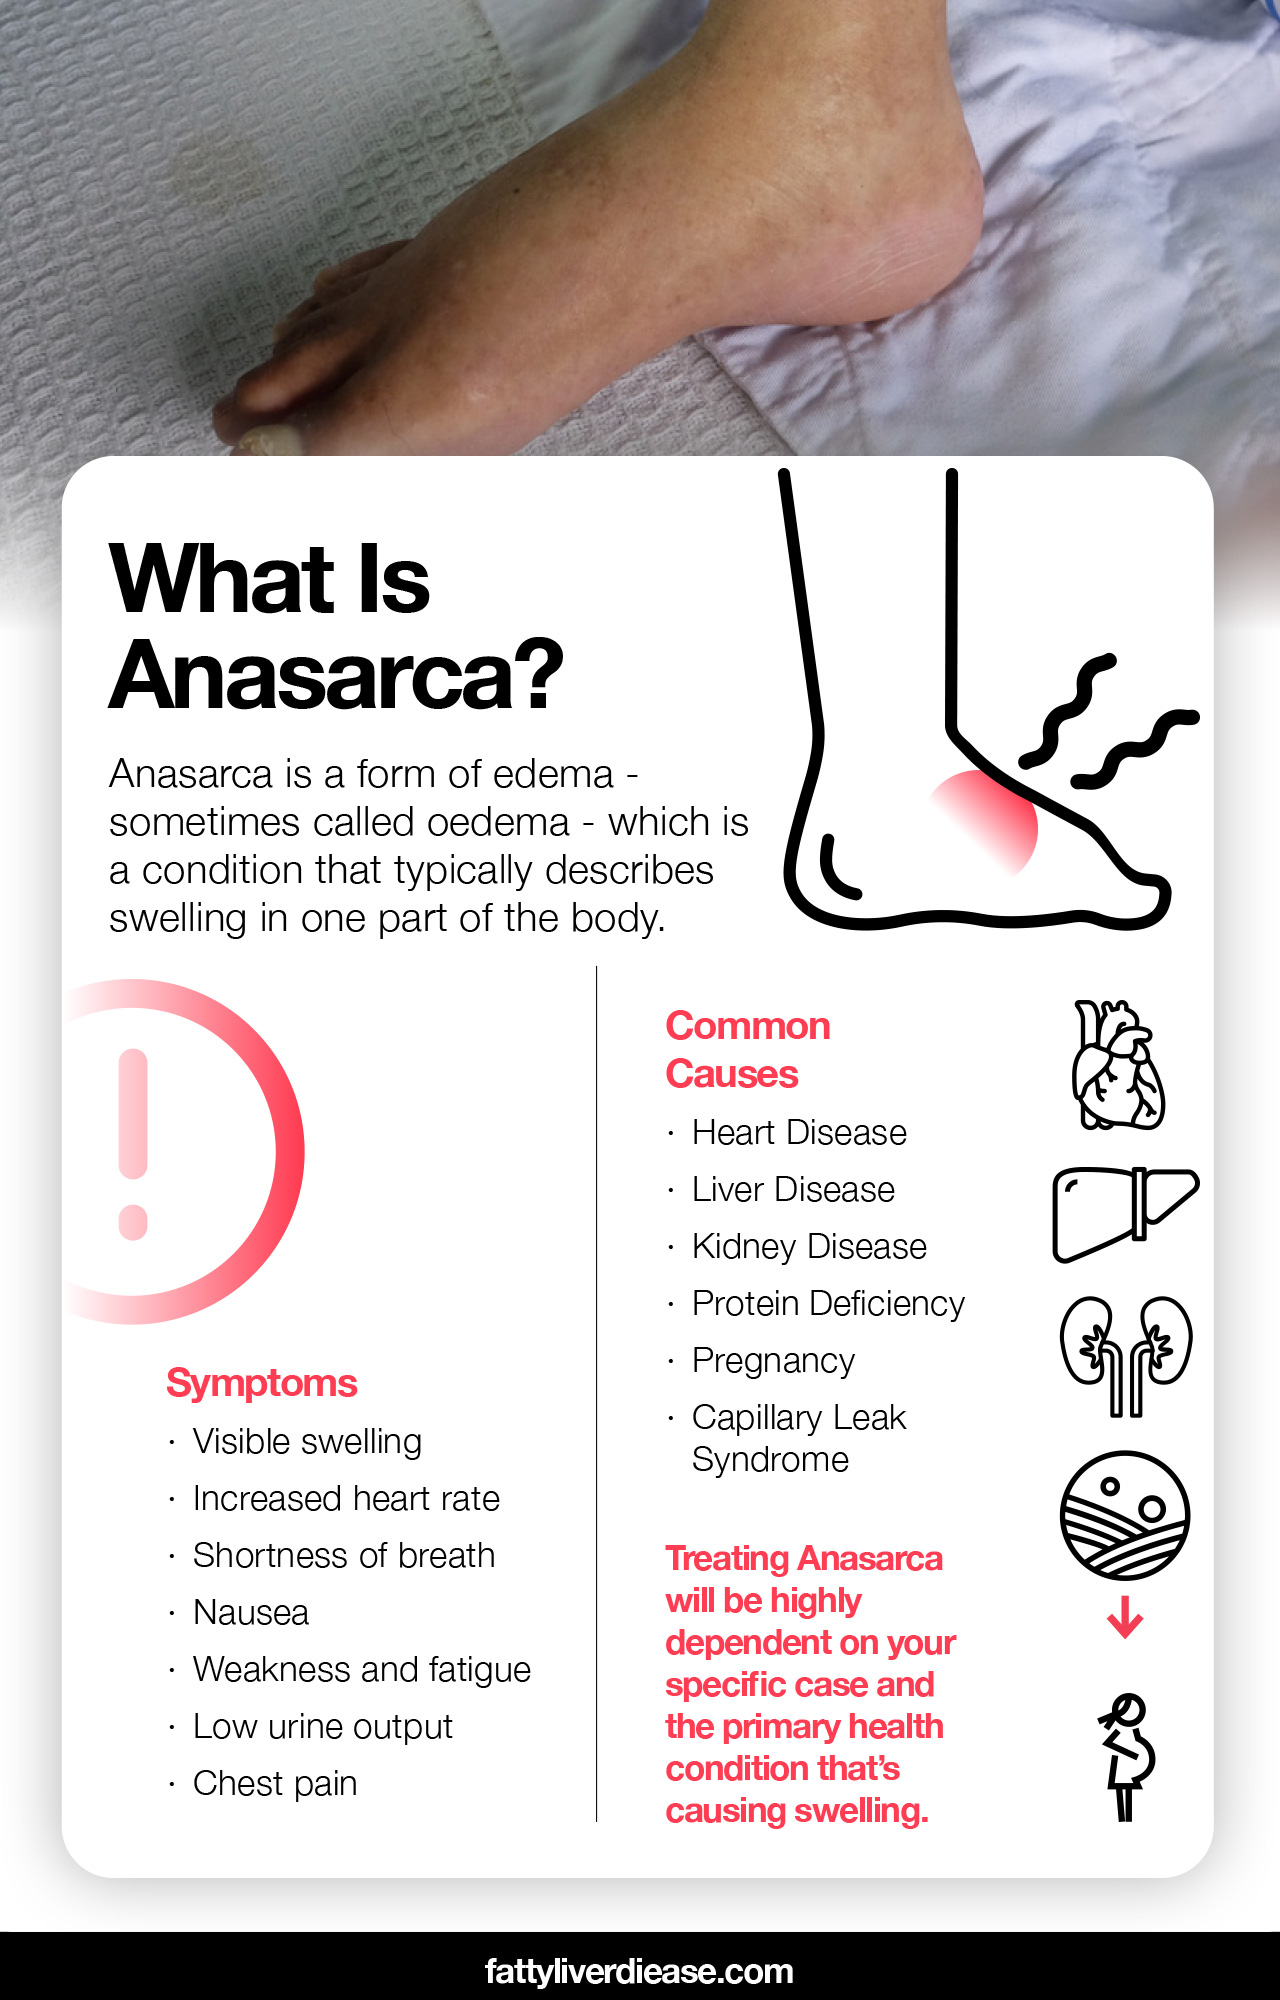 What You Need to Know About Anasarca